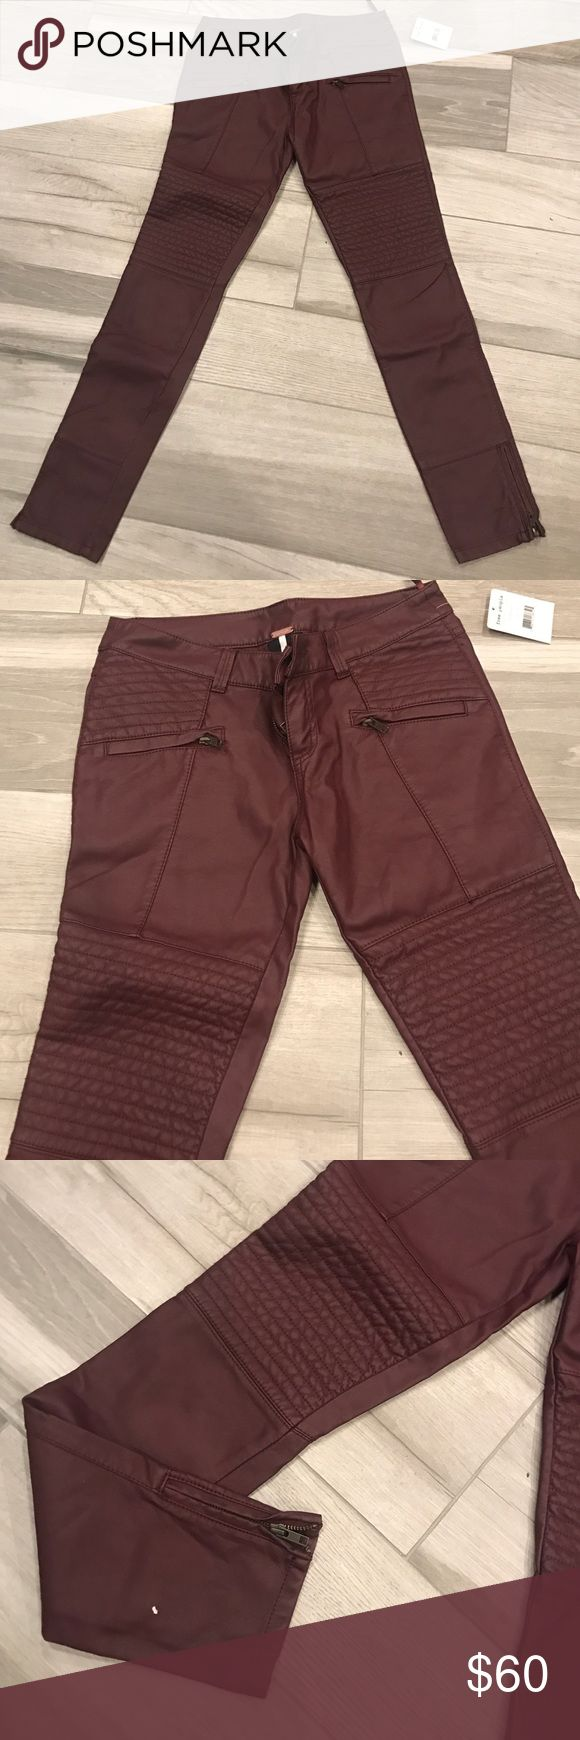 Free people faux leather pants in burgendy Free people faux leather biker pants. Style is skinny. Brand new with tag. Color is burgendy. Size 4 Free People Pants Skinny